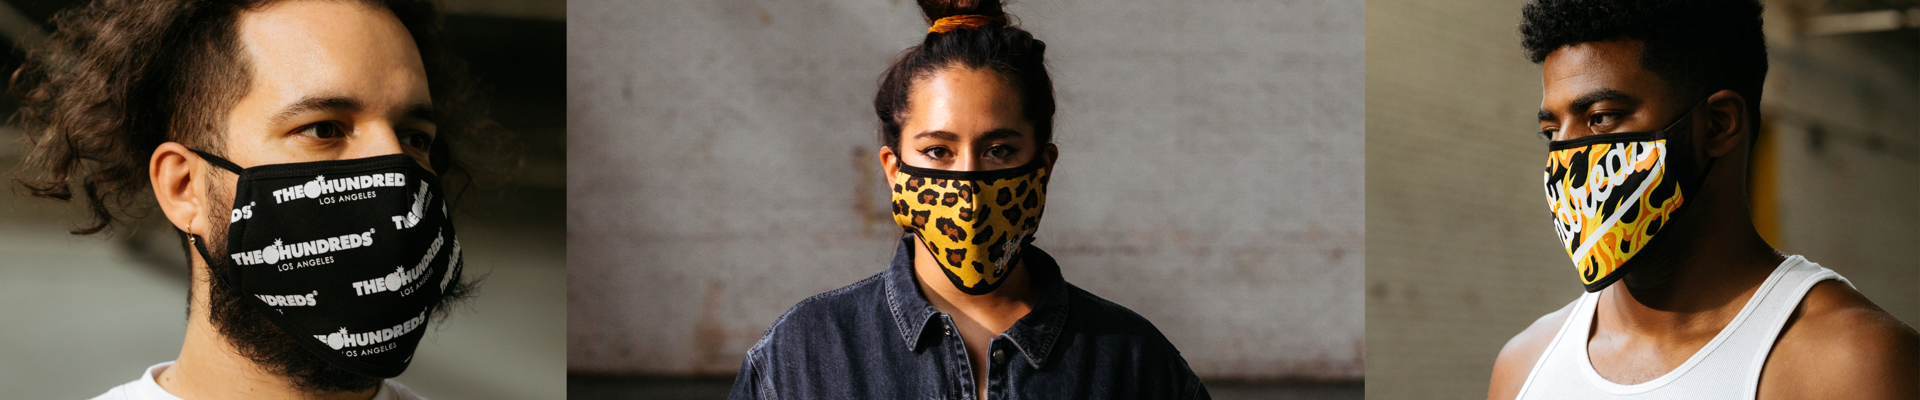 The Hundreds Face Masks